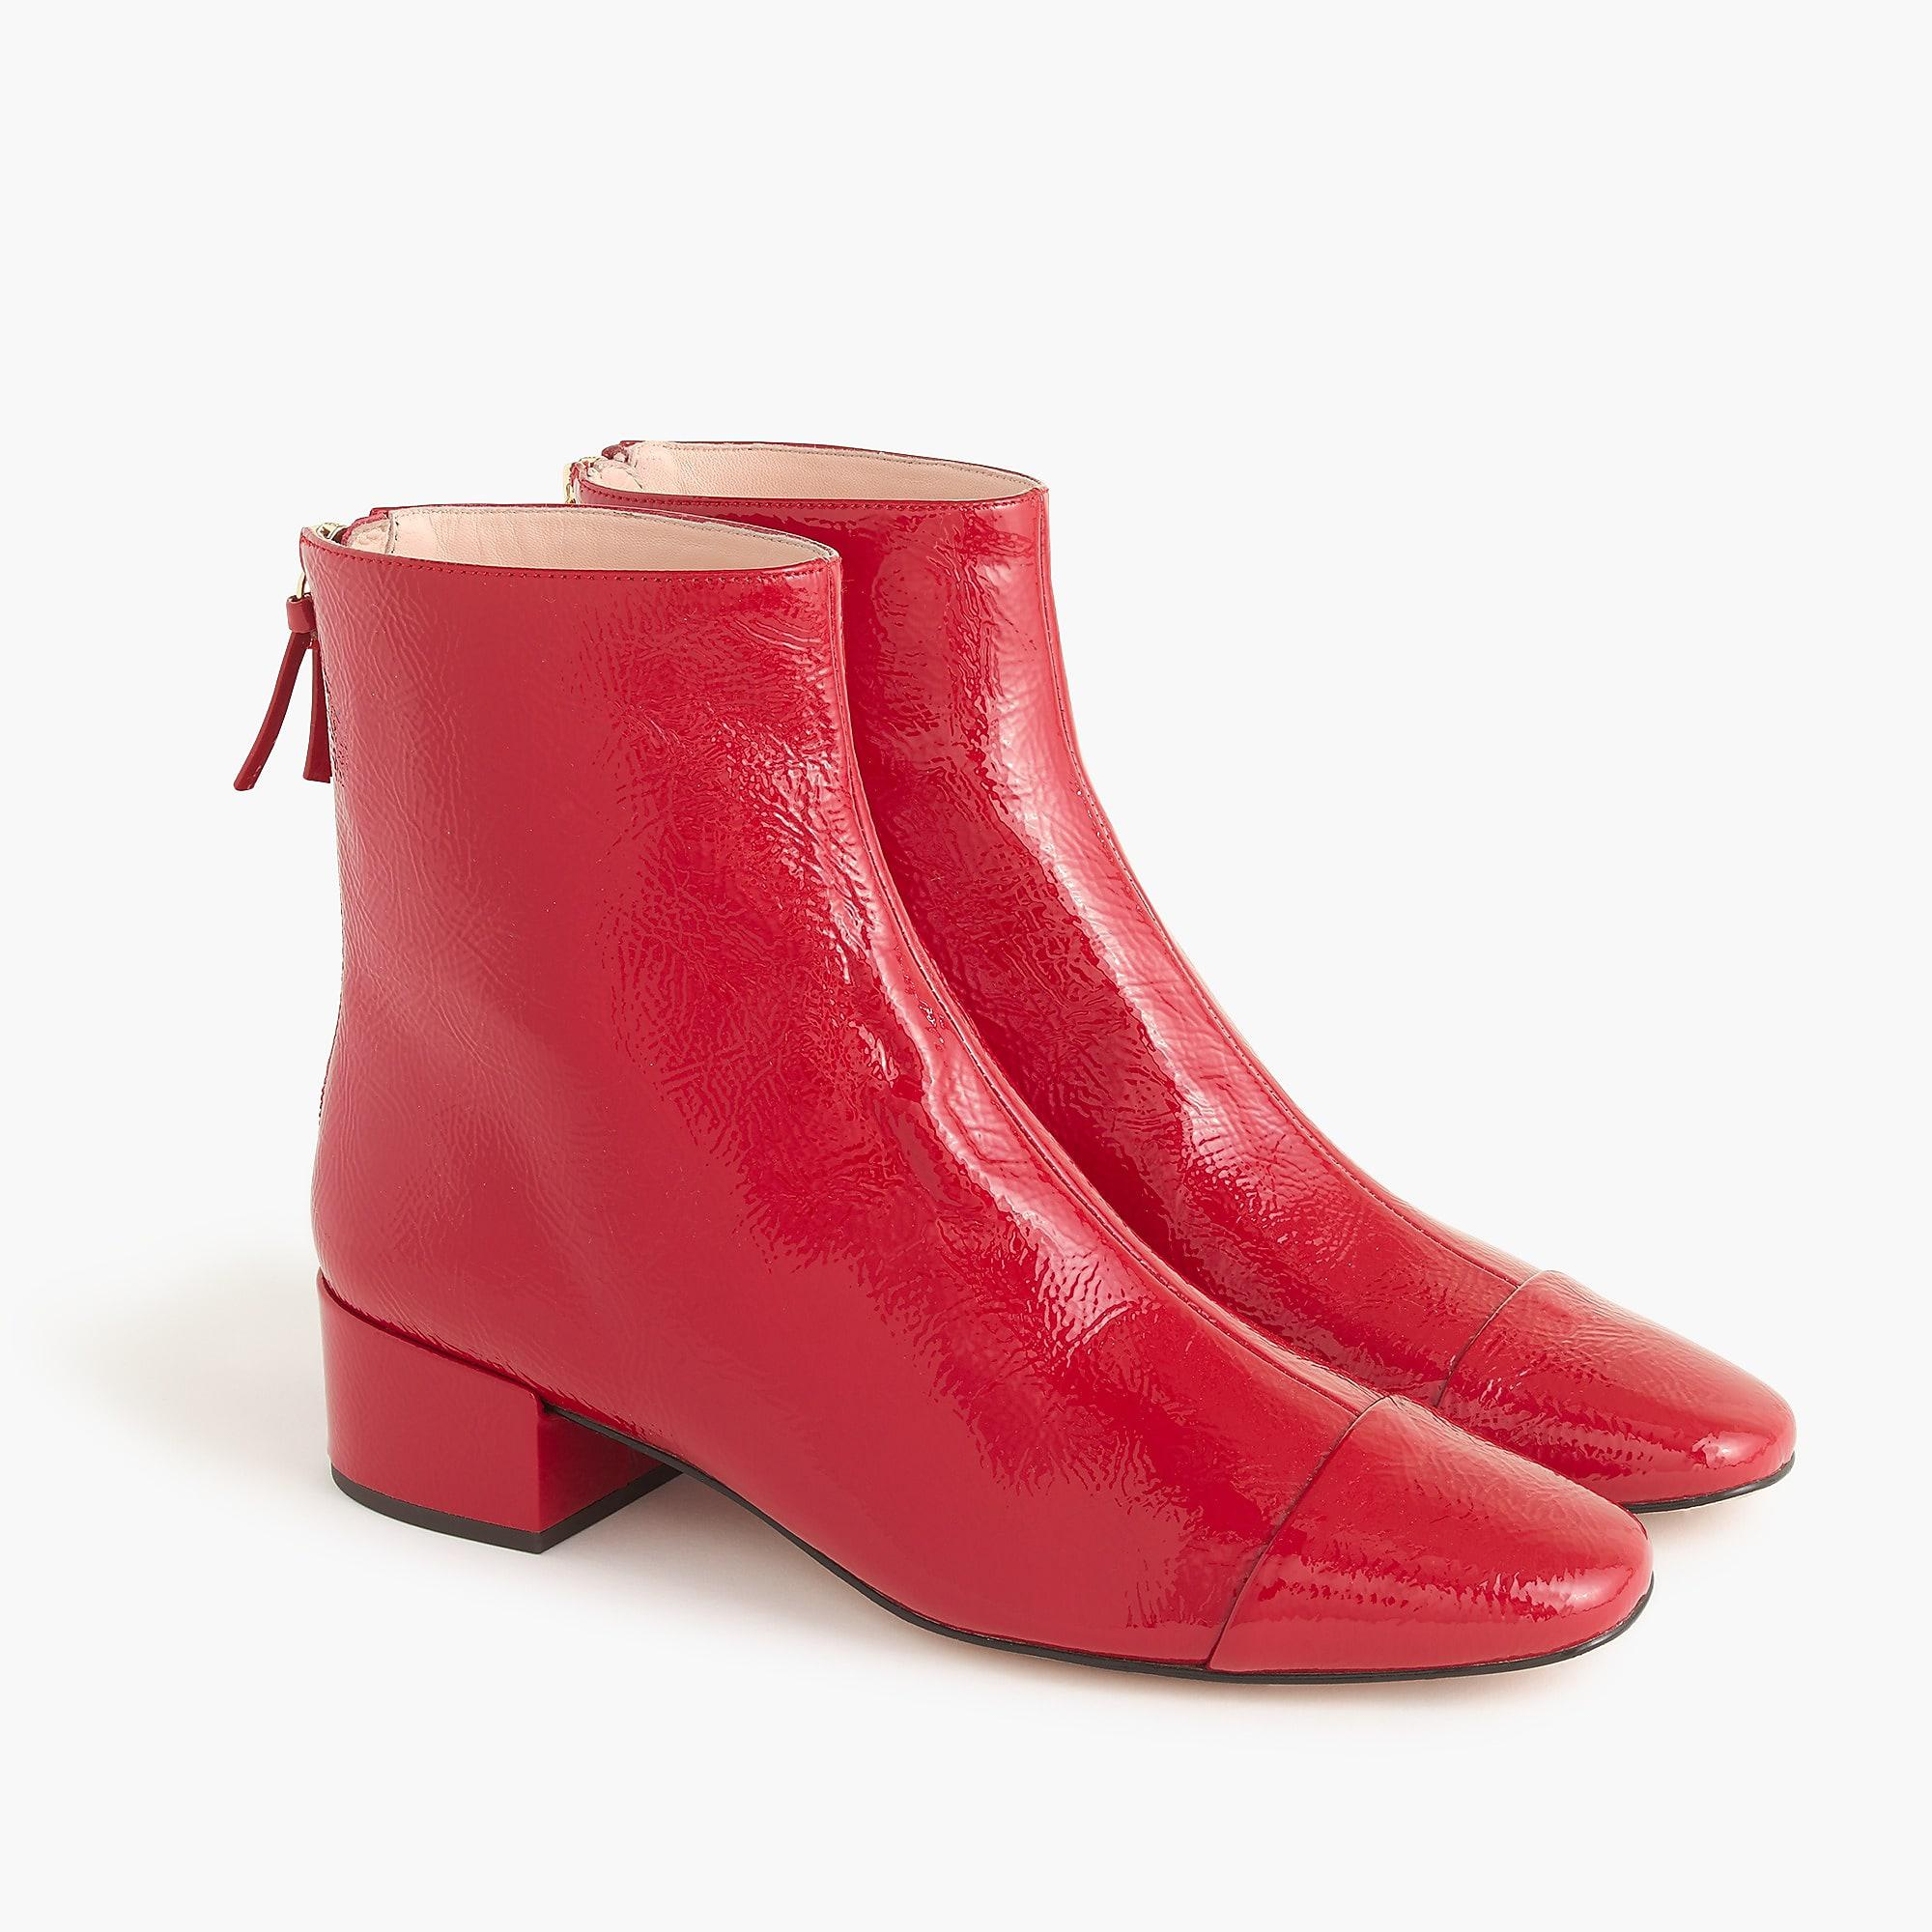 Jcrew Cap-Toe Ankle Boots In Patent Leather In Red - Lyst-6305